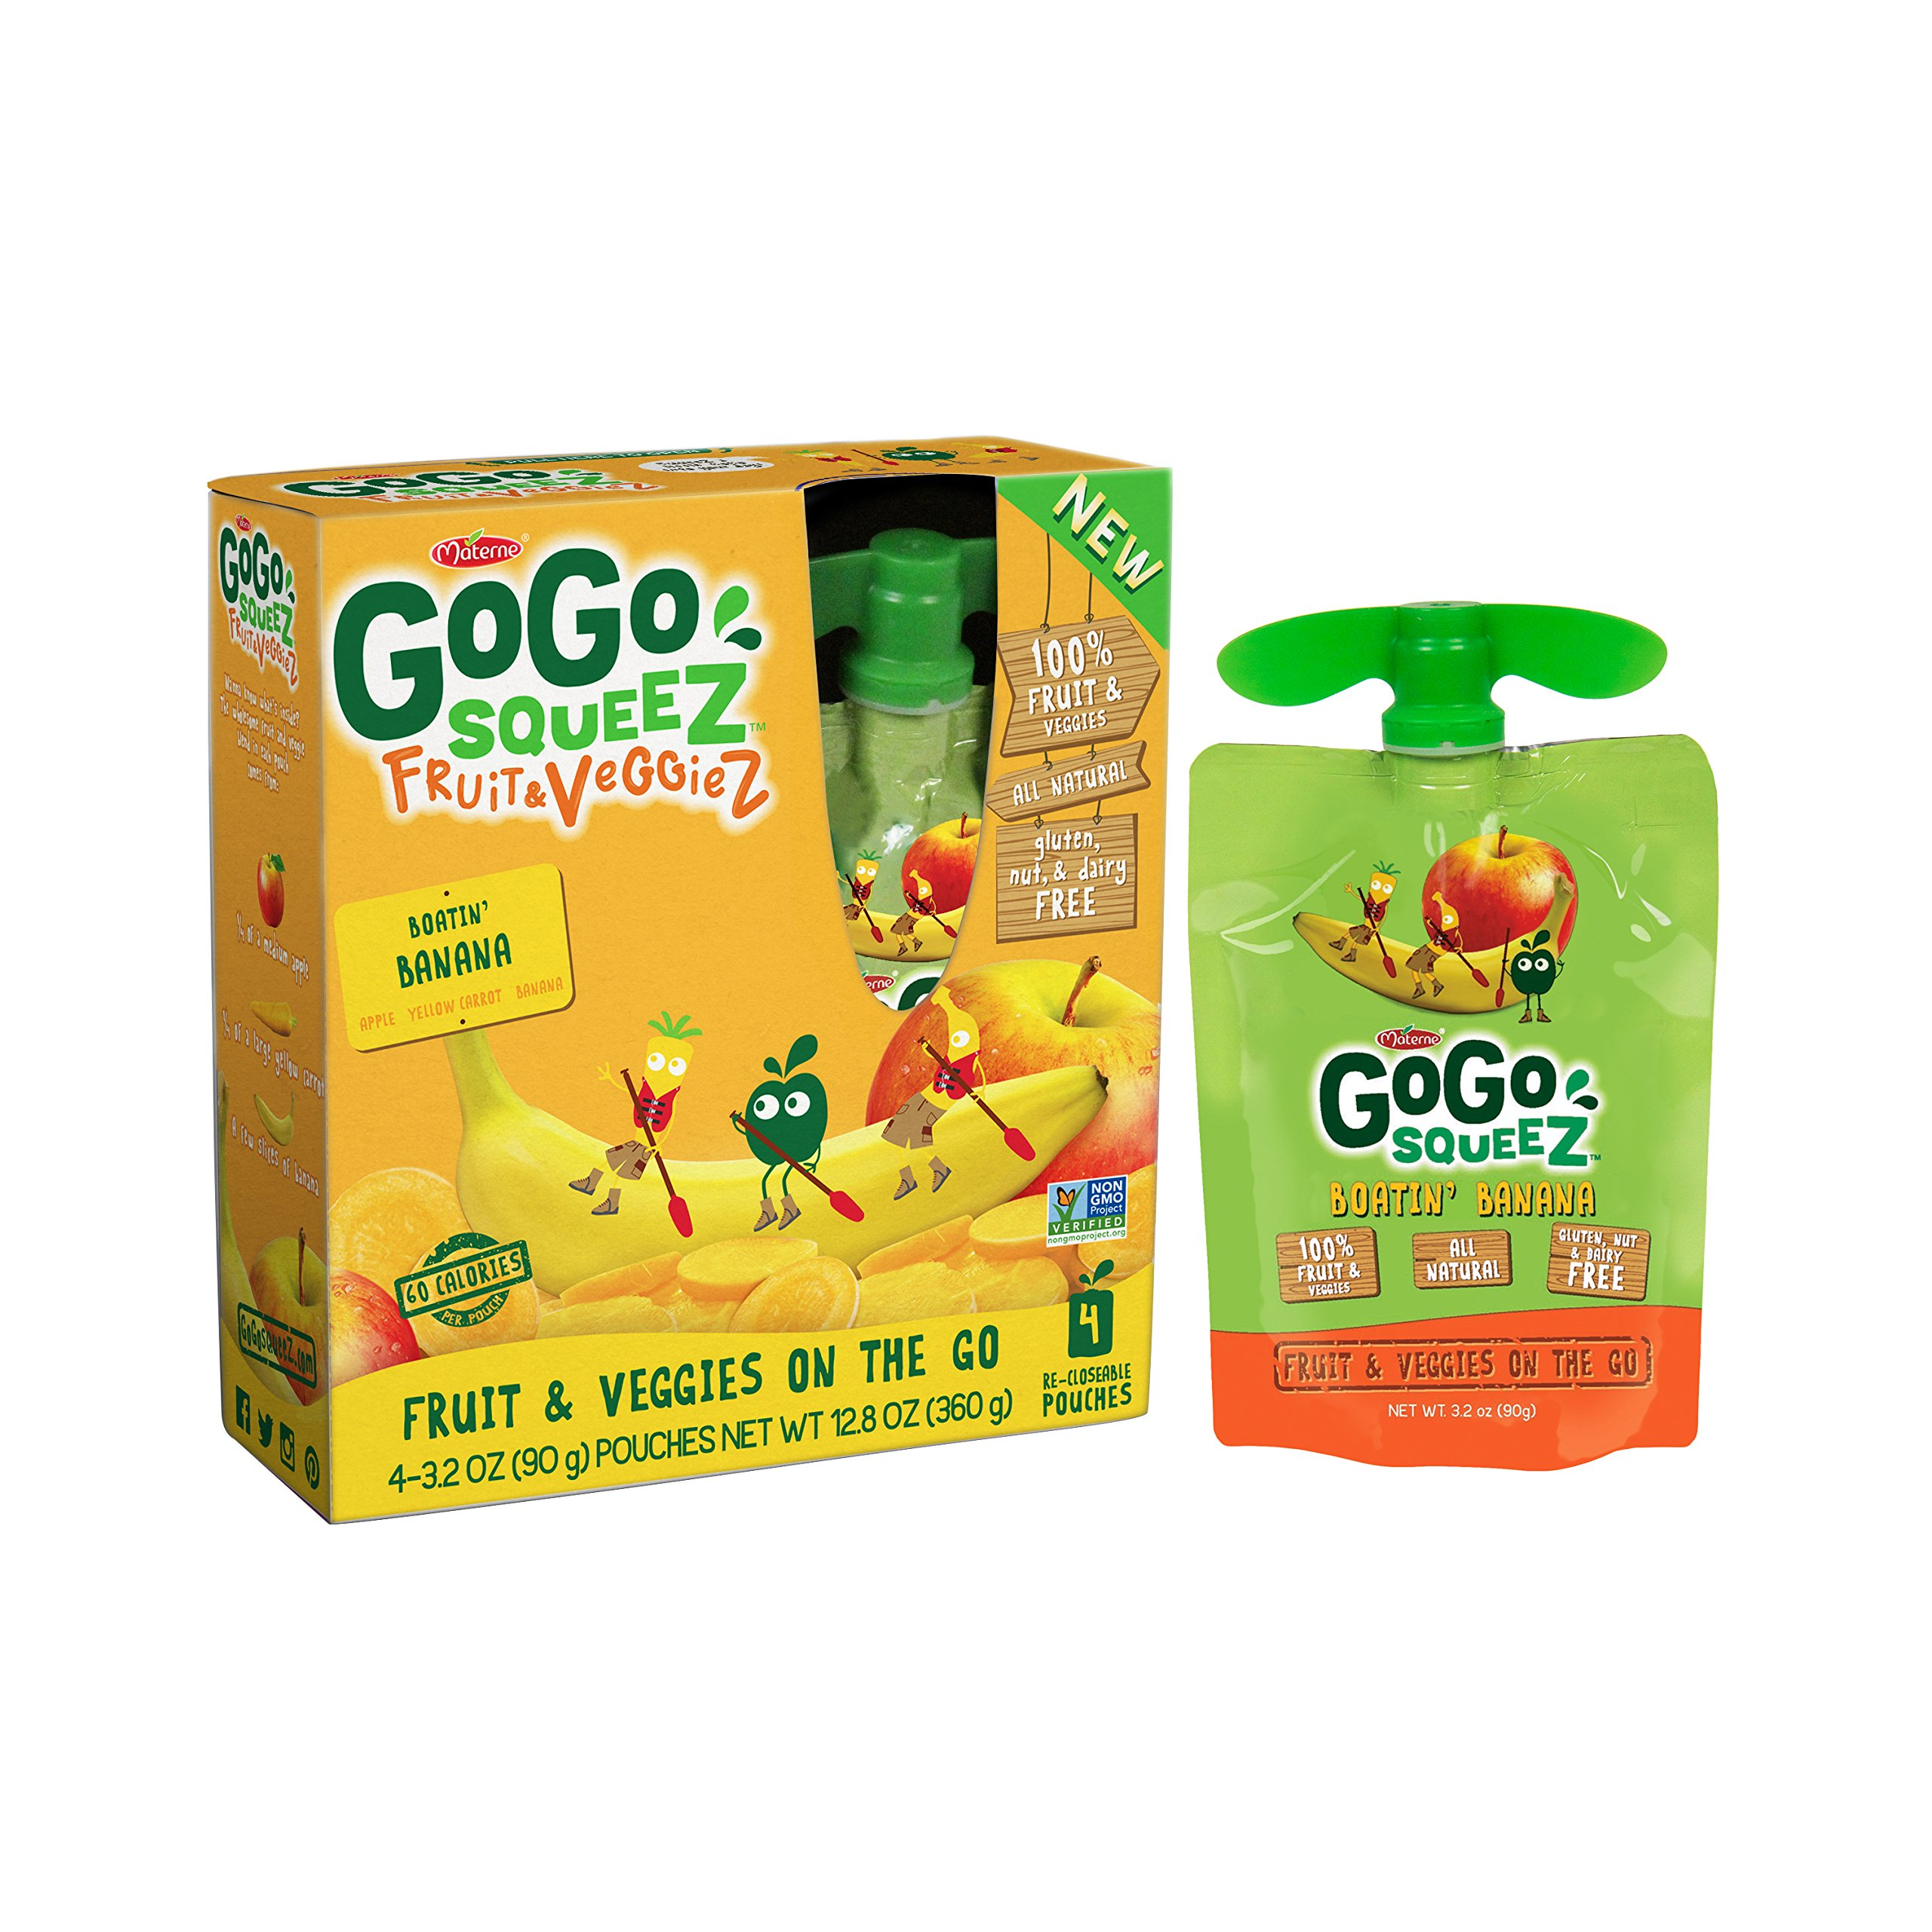 GoGo SqueeZ Fruit & VeggieZ on the Go, Apple Yellow Carrot Banana, 3.2 Ounce Portable BPA-Free Pouches, Gluten-Free, 48 Total Pouches (12 Boxes with 4 Pouches Each)